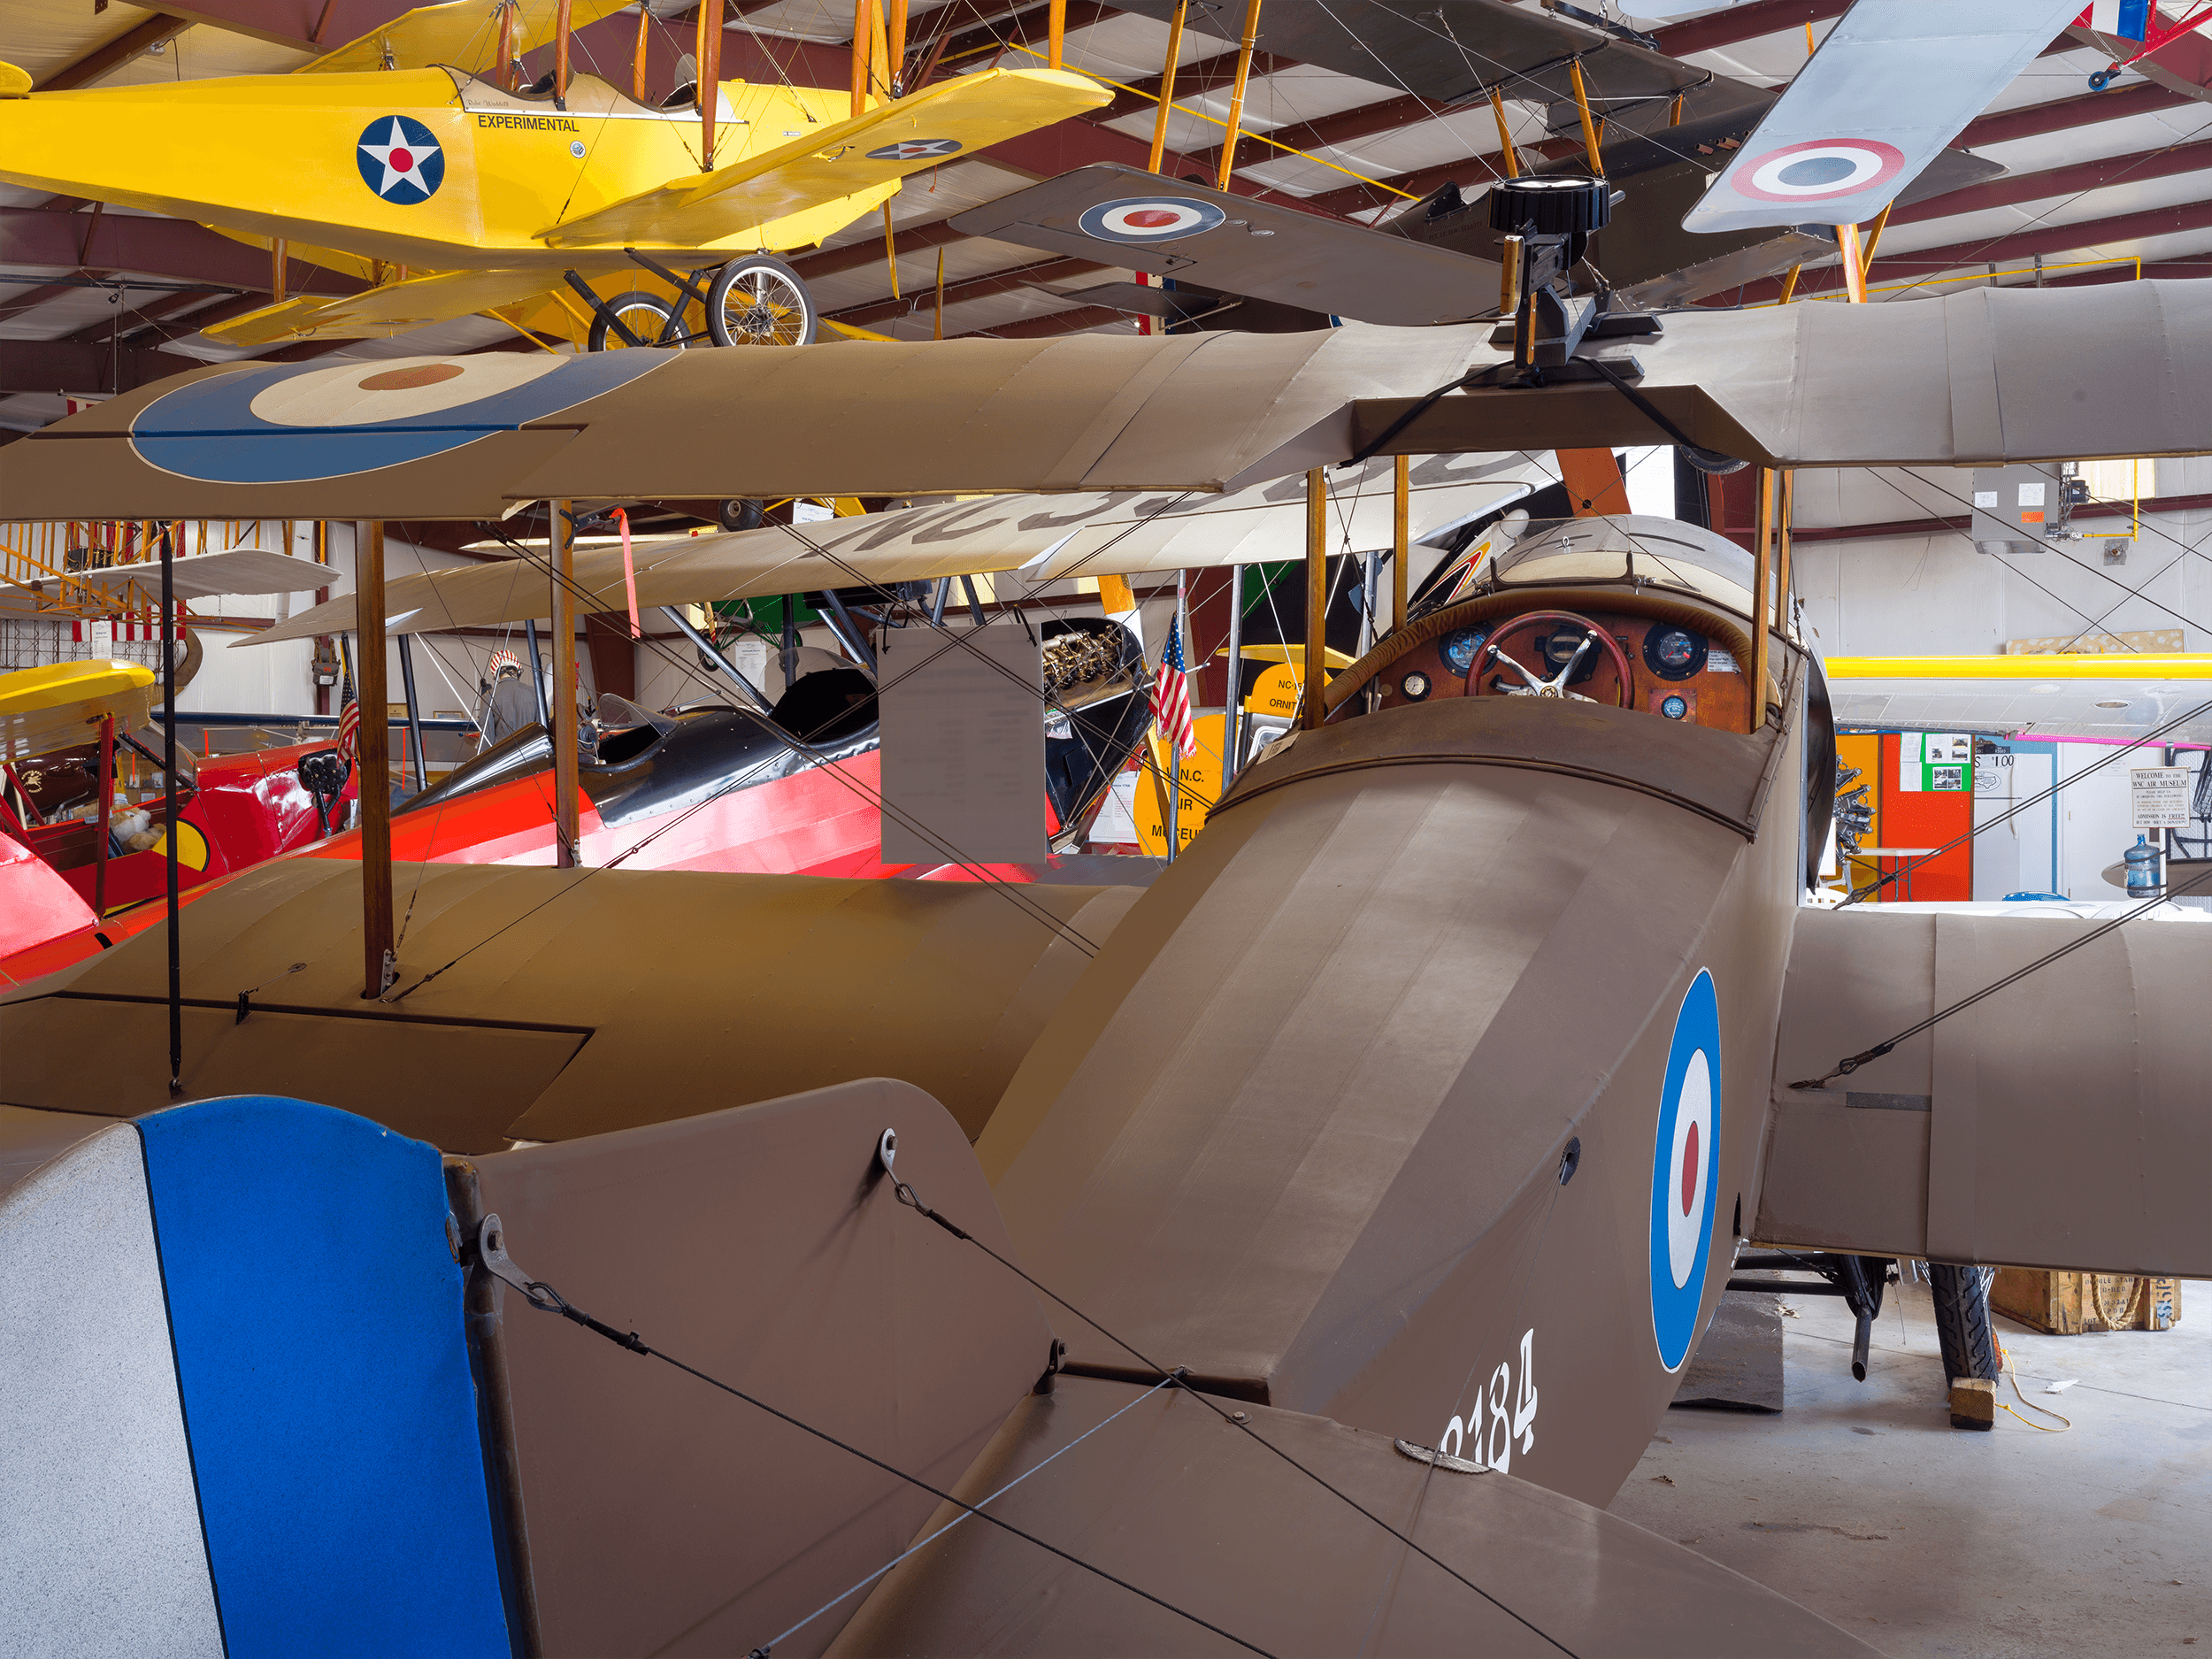 The  1915 Sopwith Baby  was used by the Royal Naval Air Service in WWI. The model on display is a full-scale replica, which was donated to the museum in 2015.